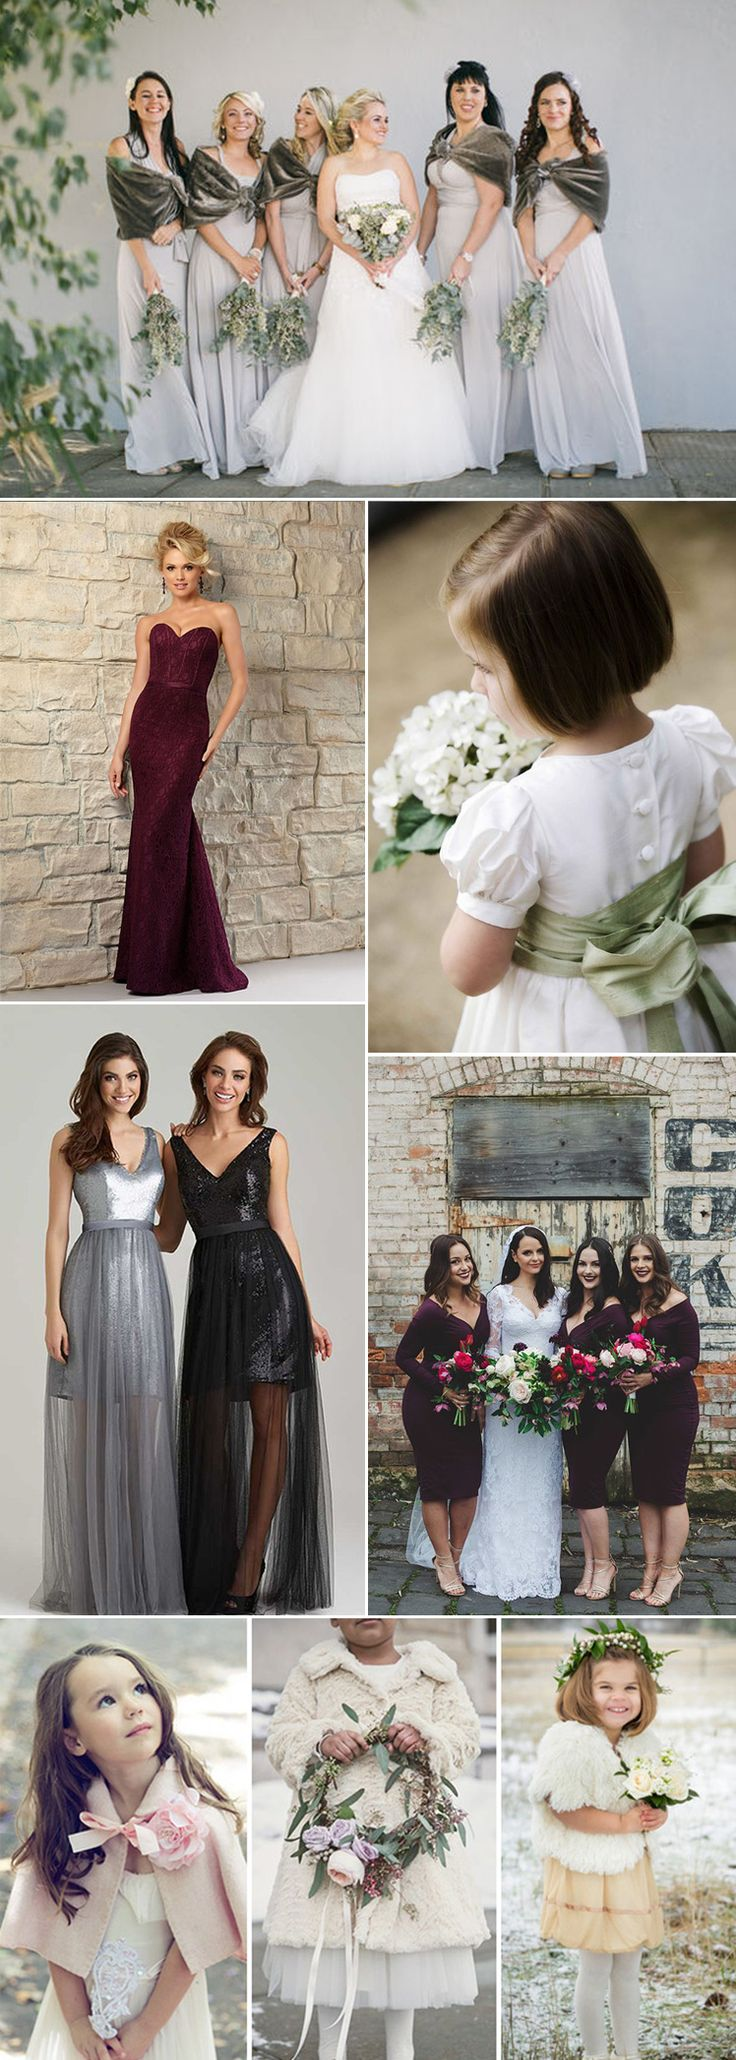 229 best beautiful bridesmaids images on pinterest wedding bridesmaid dresses for a winter wedding ombrellifo Choice Image